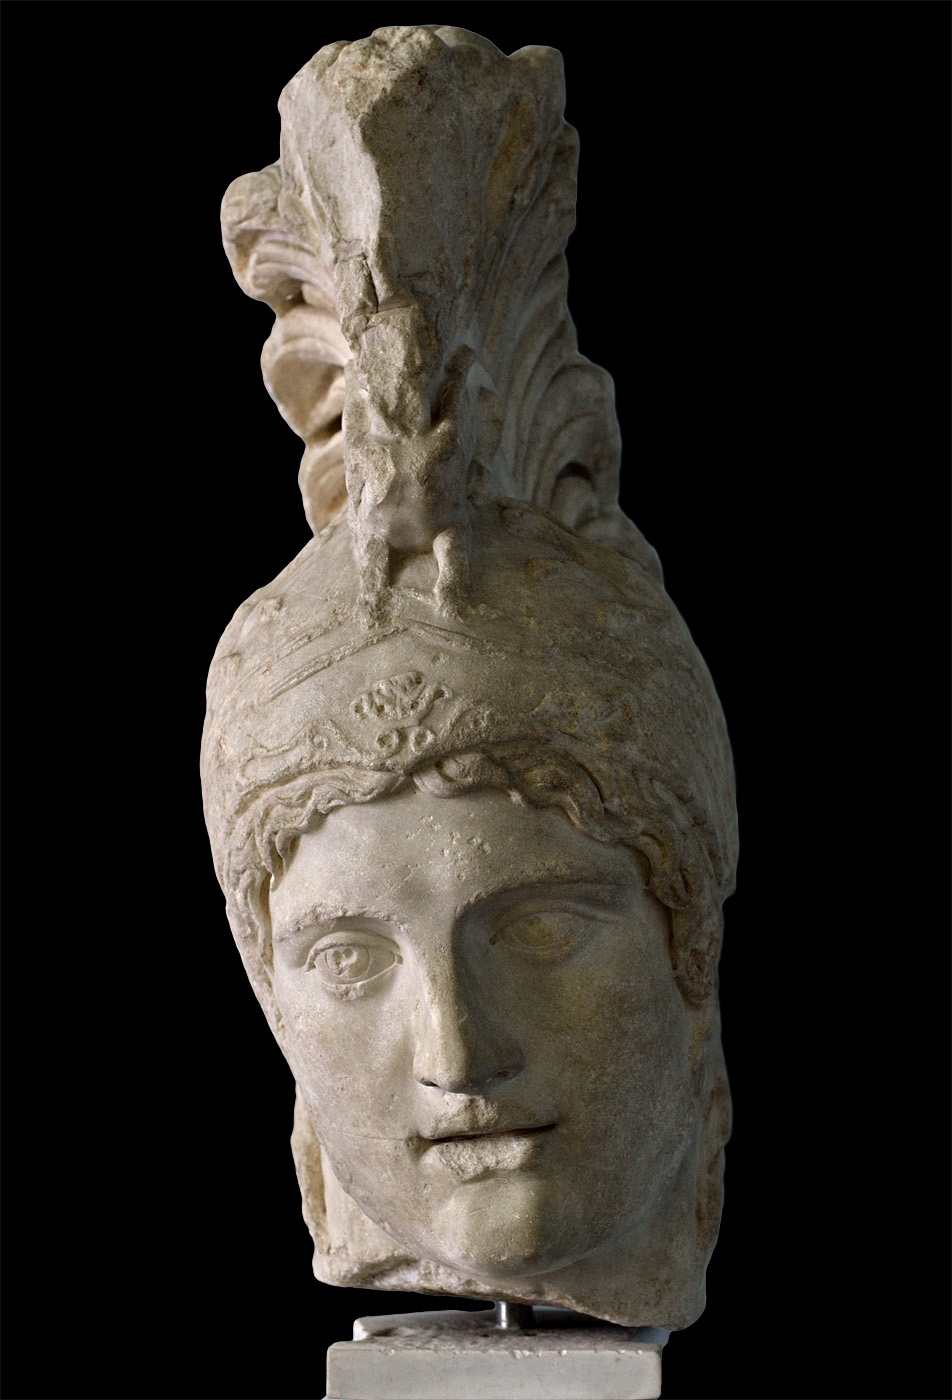 Head of Ares (the Ares Borghese type). Luna marble. Severian replica from the after a bronze Greek statue by Alkamenes casted in 420 BCE. Inv. No. MC 795. Rome, Capitoline Museums, Museum Montemartini (Centrale Montemartini), II. 68